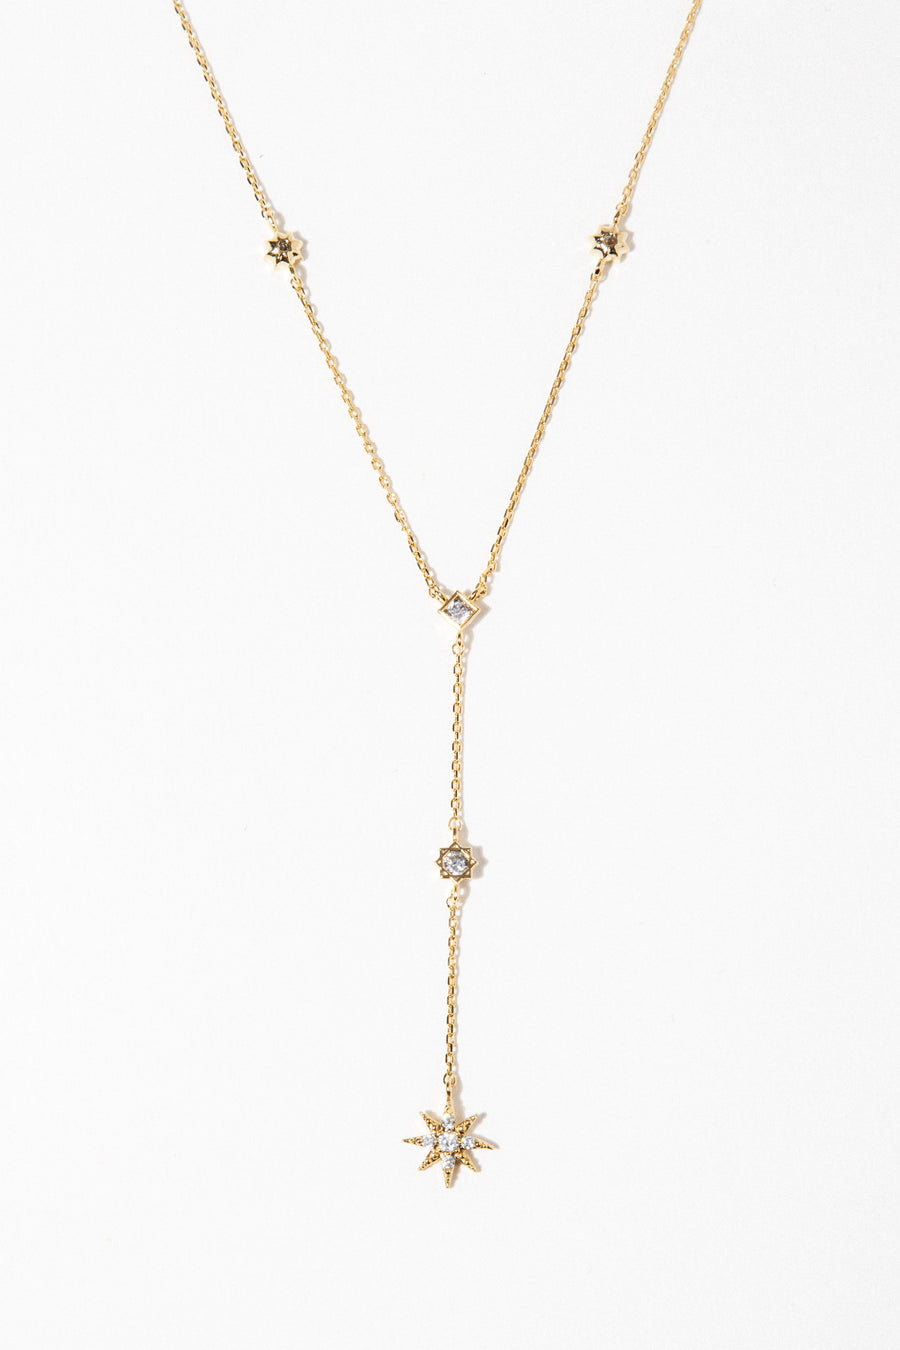 charis Jewelry Stardust Lariat Necklace